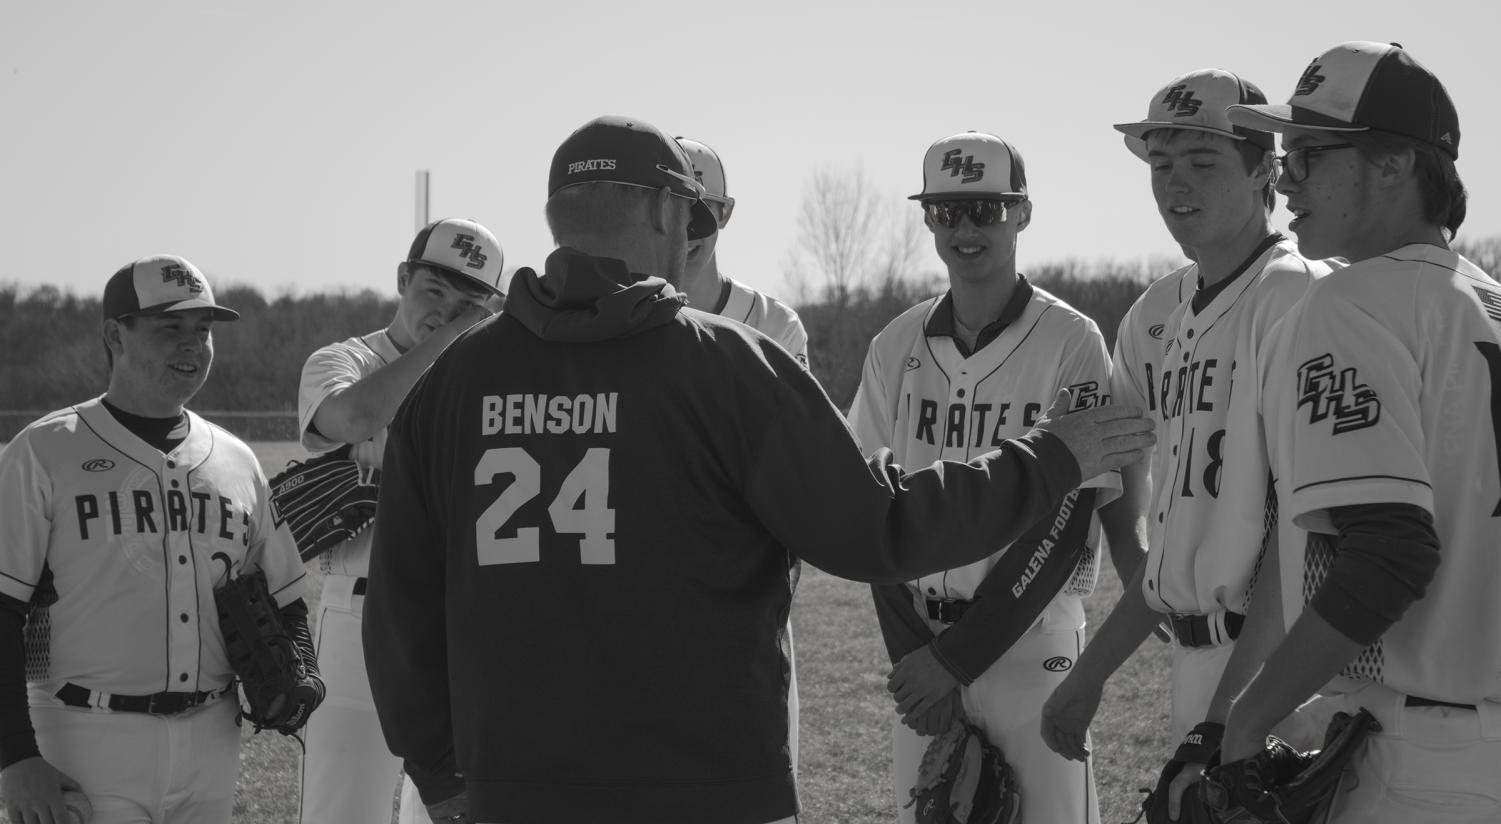 Coach Benson gives advice to baseball players sophomore Clay Folks, sophomore Owen Wells, junior Ben Nack, freshman Brady Schemehorn, junior Chance Wills, and junior Henry Anderson during the game against the Pearl City Wolves. The team came out on top with a score of 3-2. Evan Kruse was a notable player of the game with a walk off. Both the coaches and the players are excited to see what the season holds.